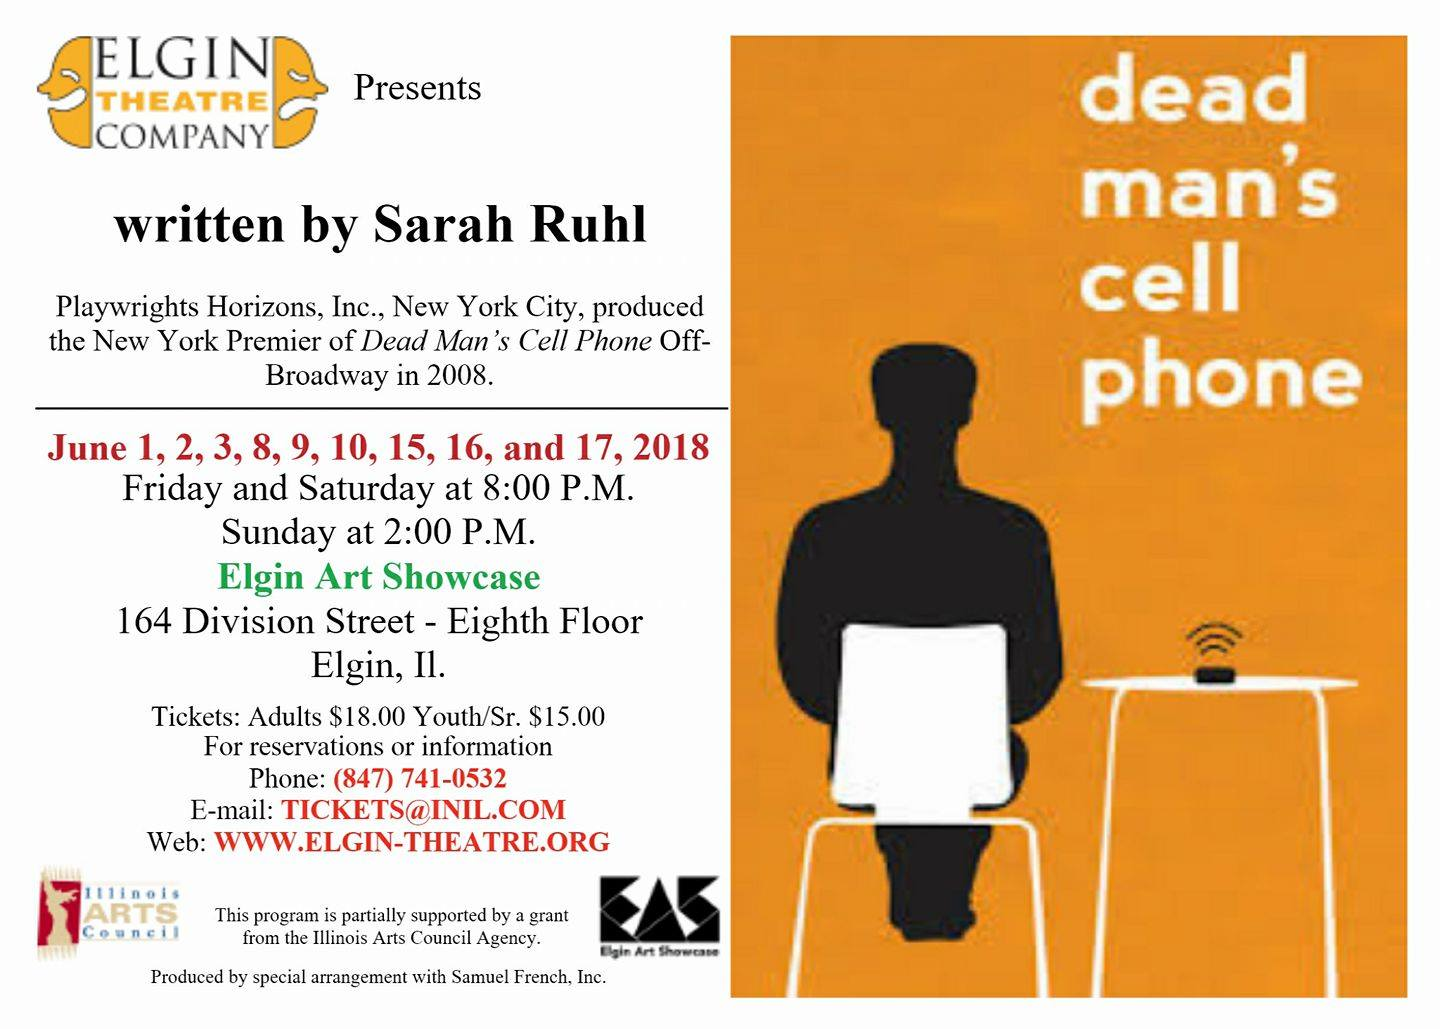 Dead Man's Cell Phone at the Elgin Art Showcase, June 1-17, 2018